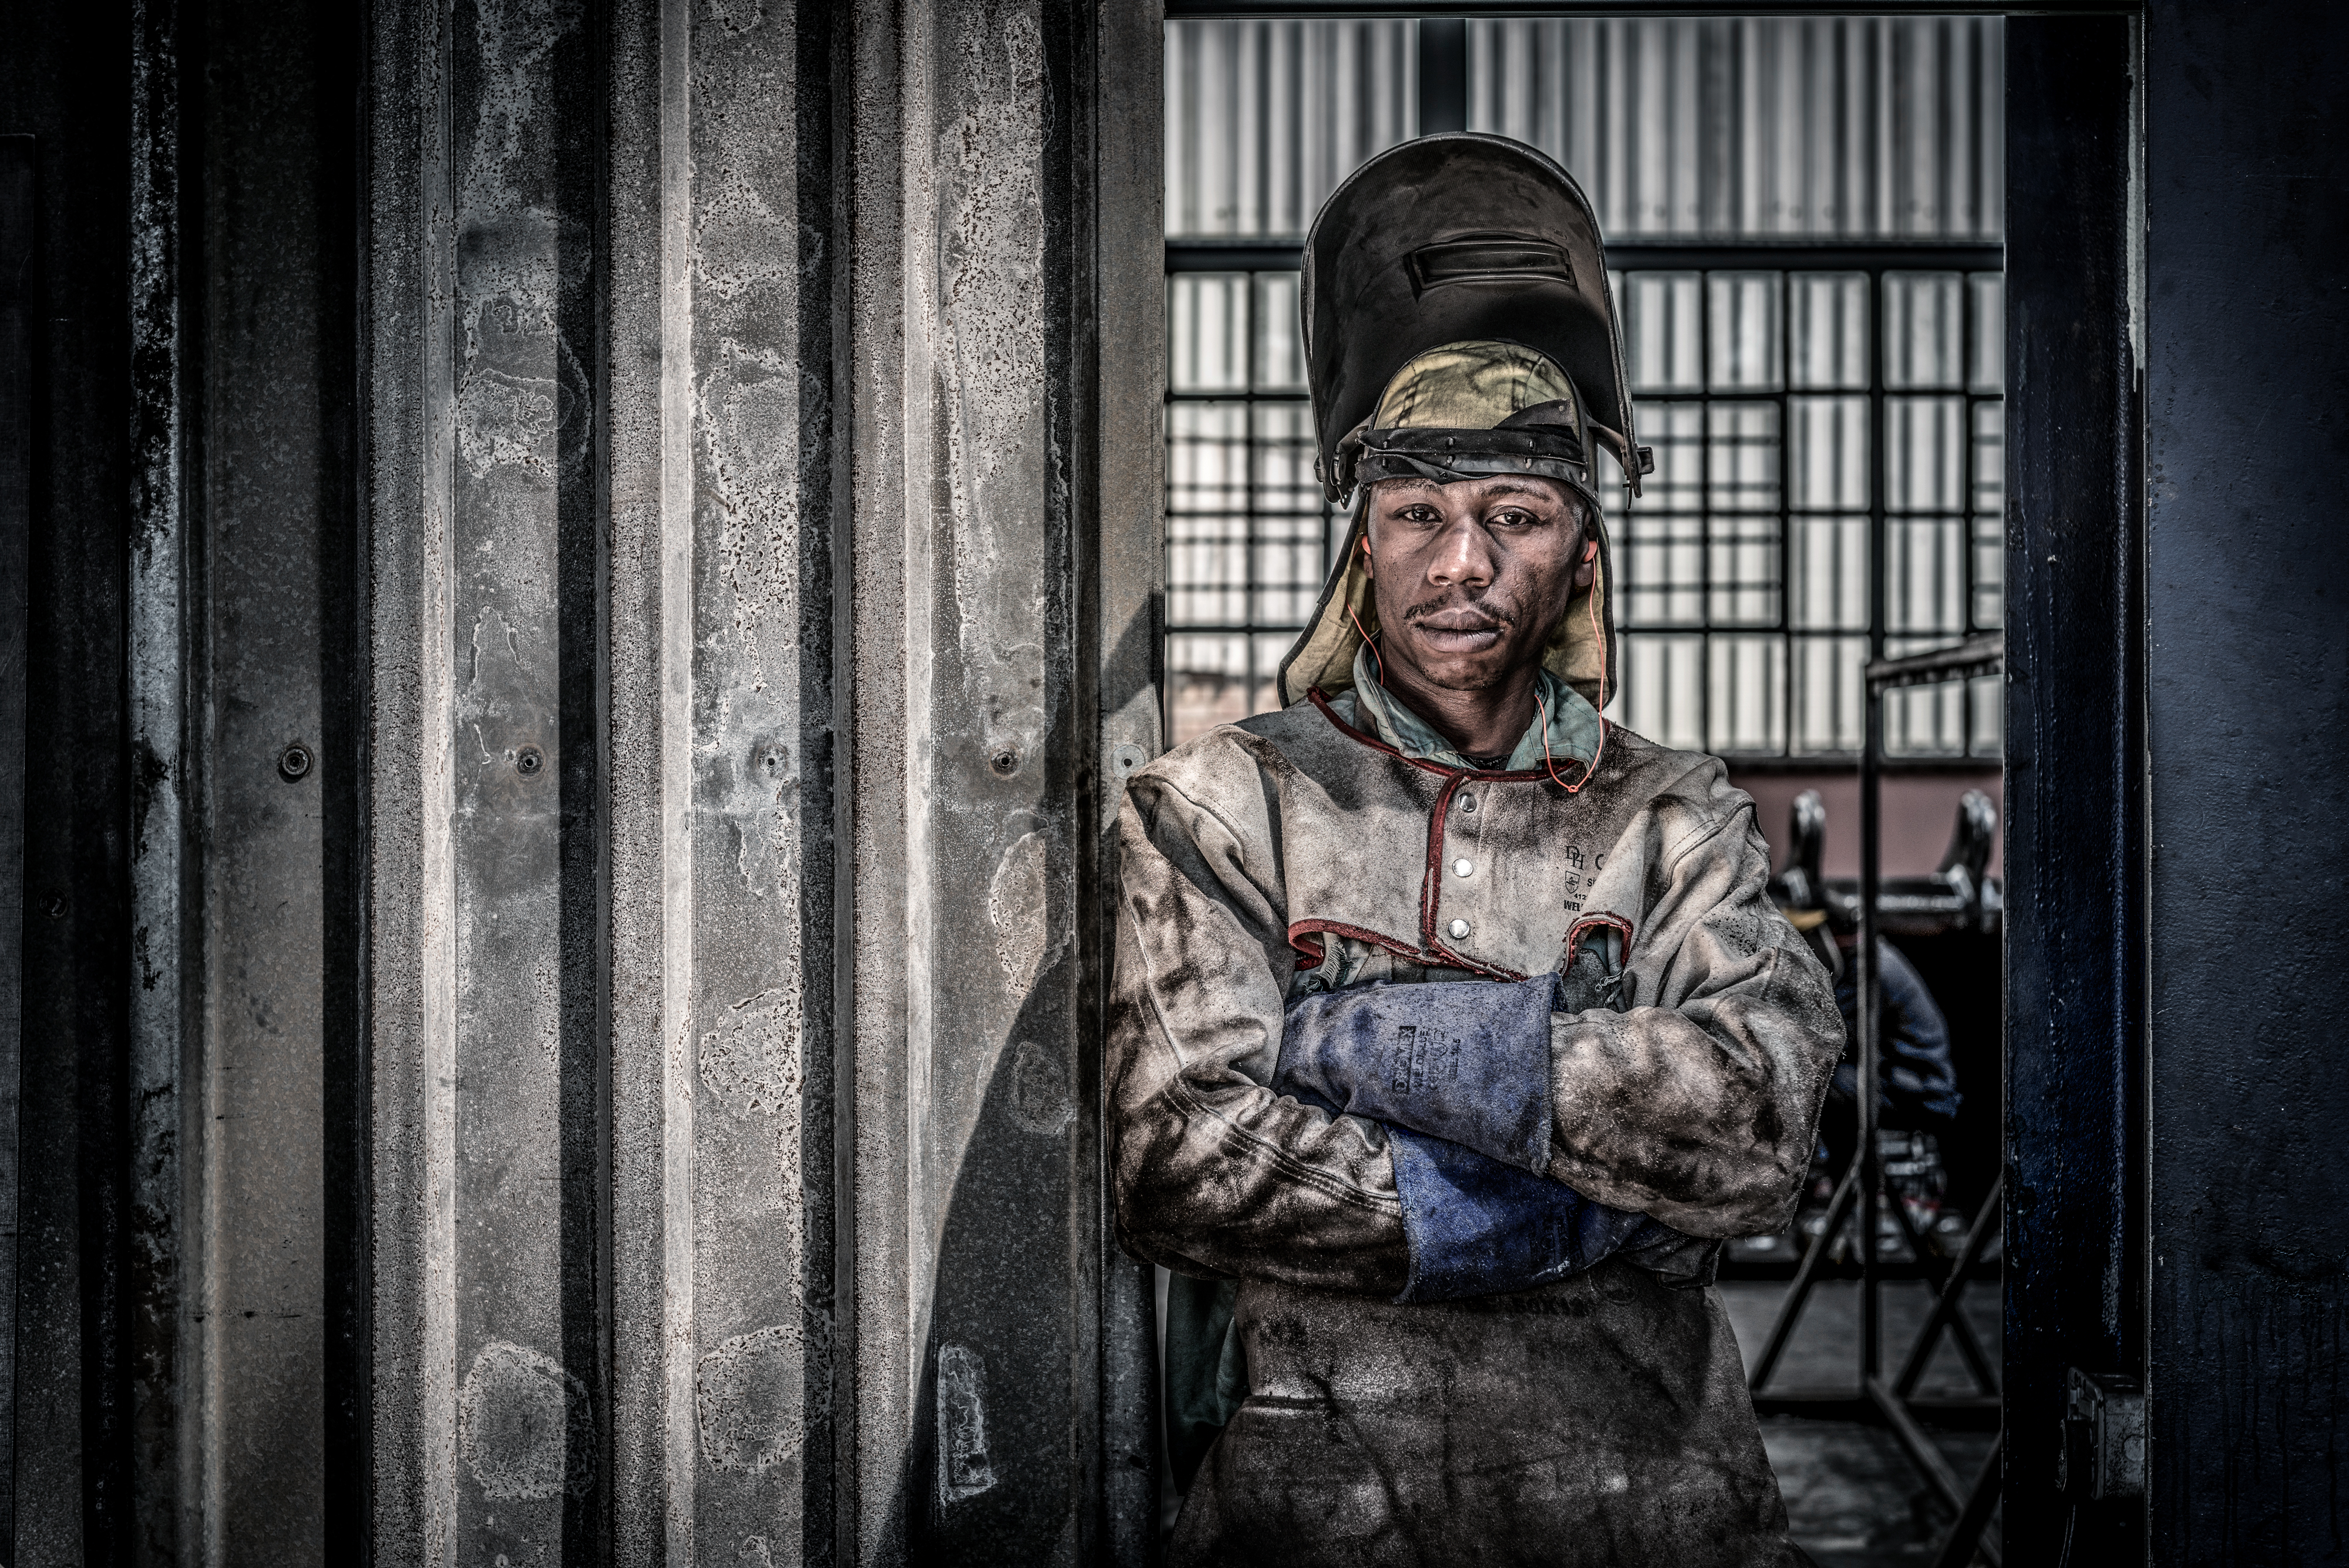 welder, south africa, worker, portrait,